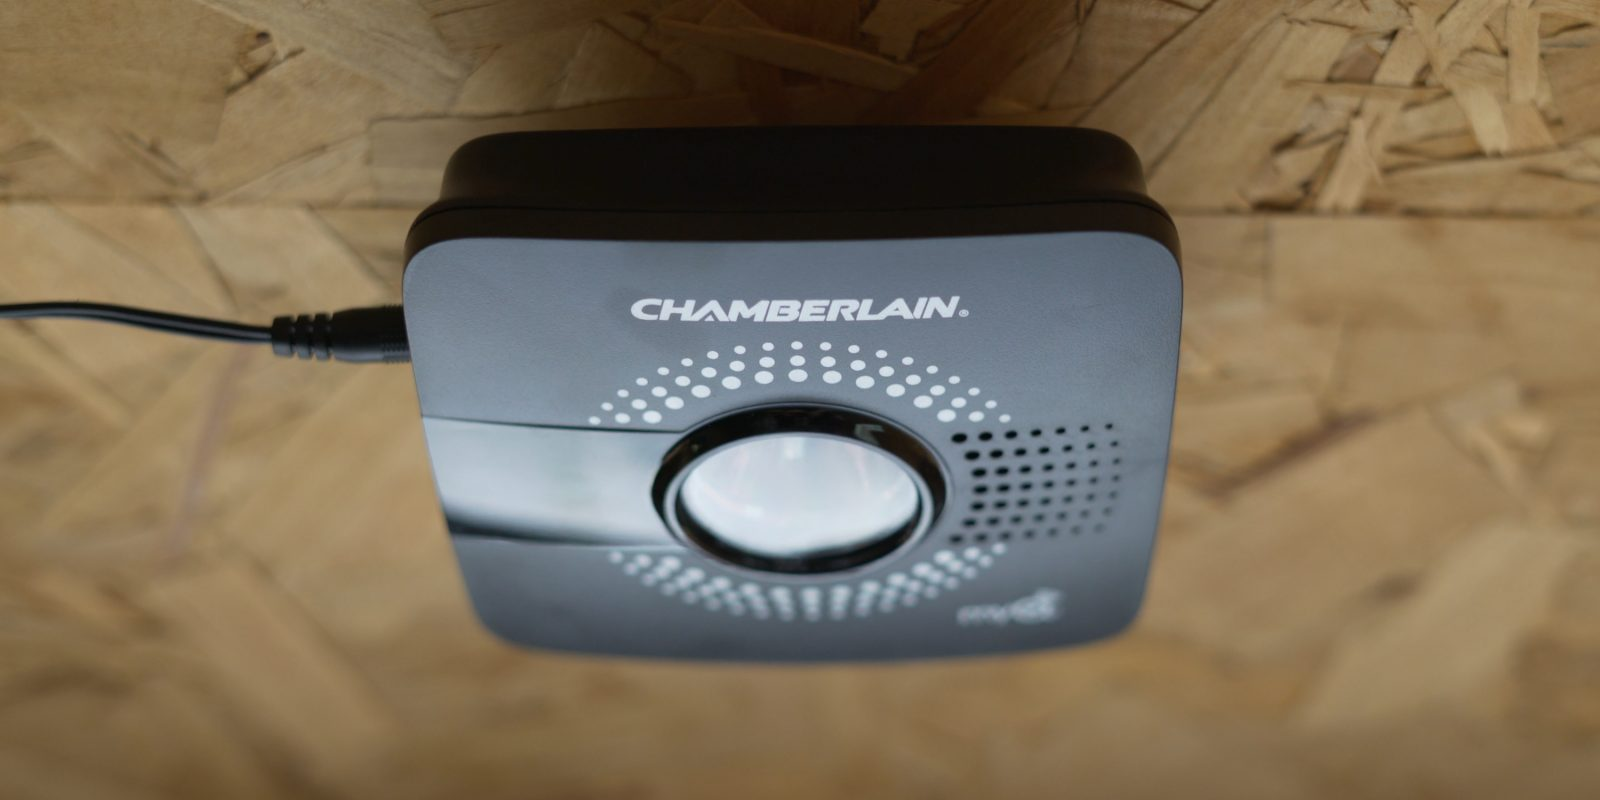 Make your garage smart with Chamberlain's myQ Hub at $33 (Reg. up to $50)